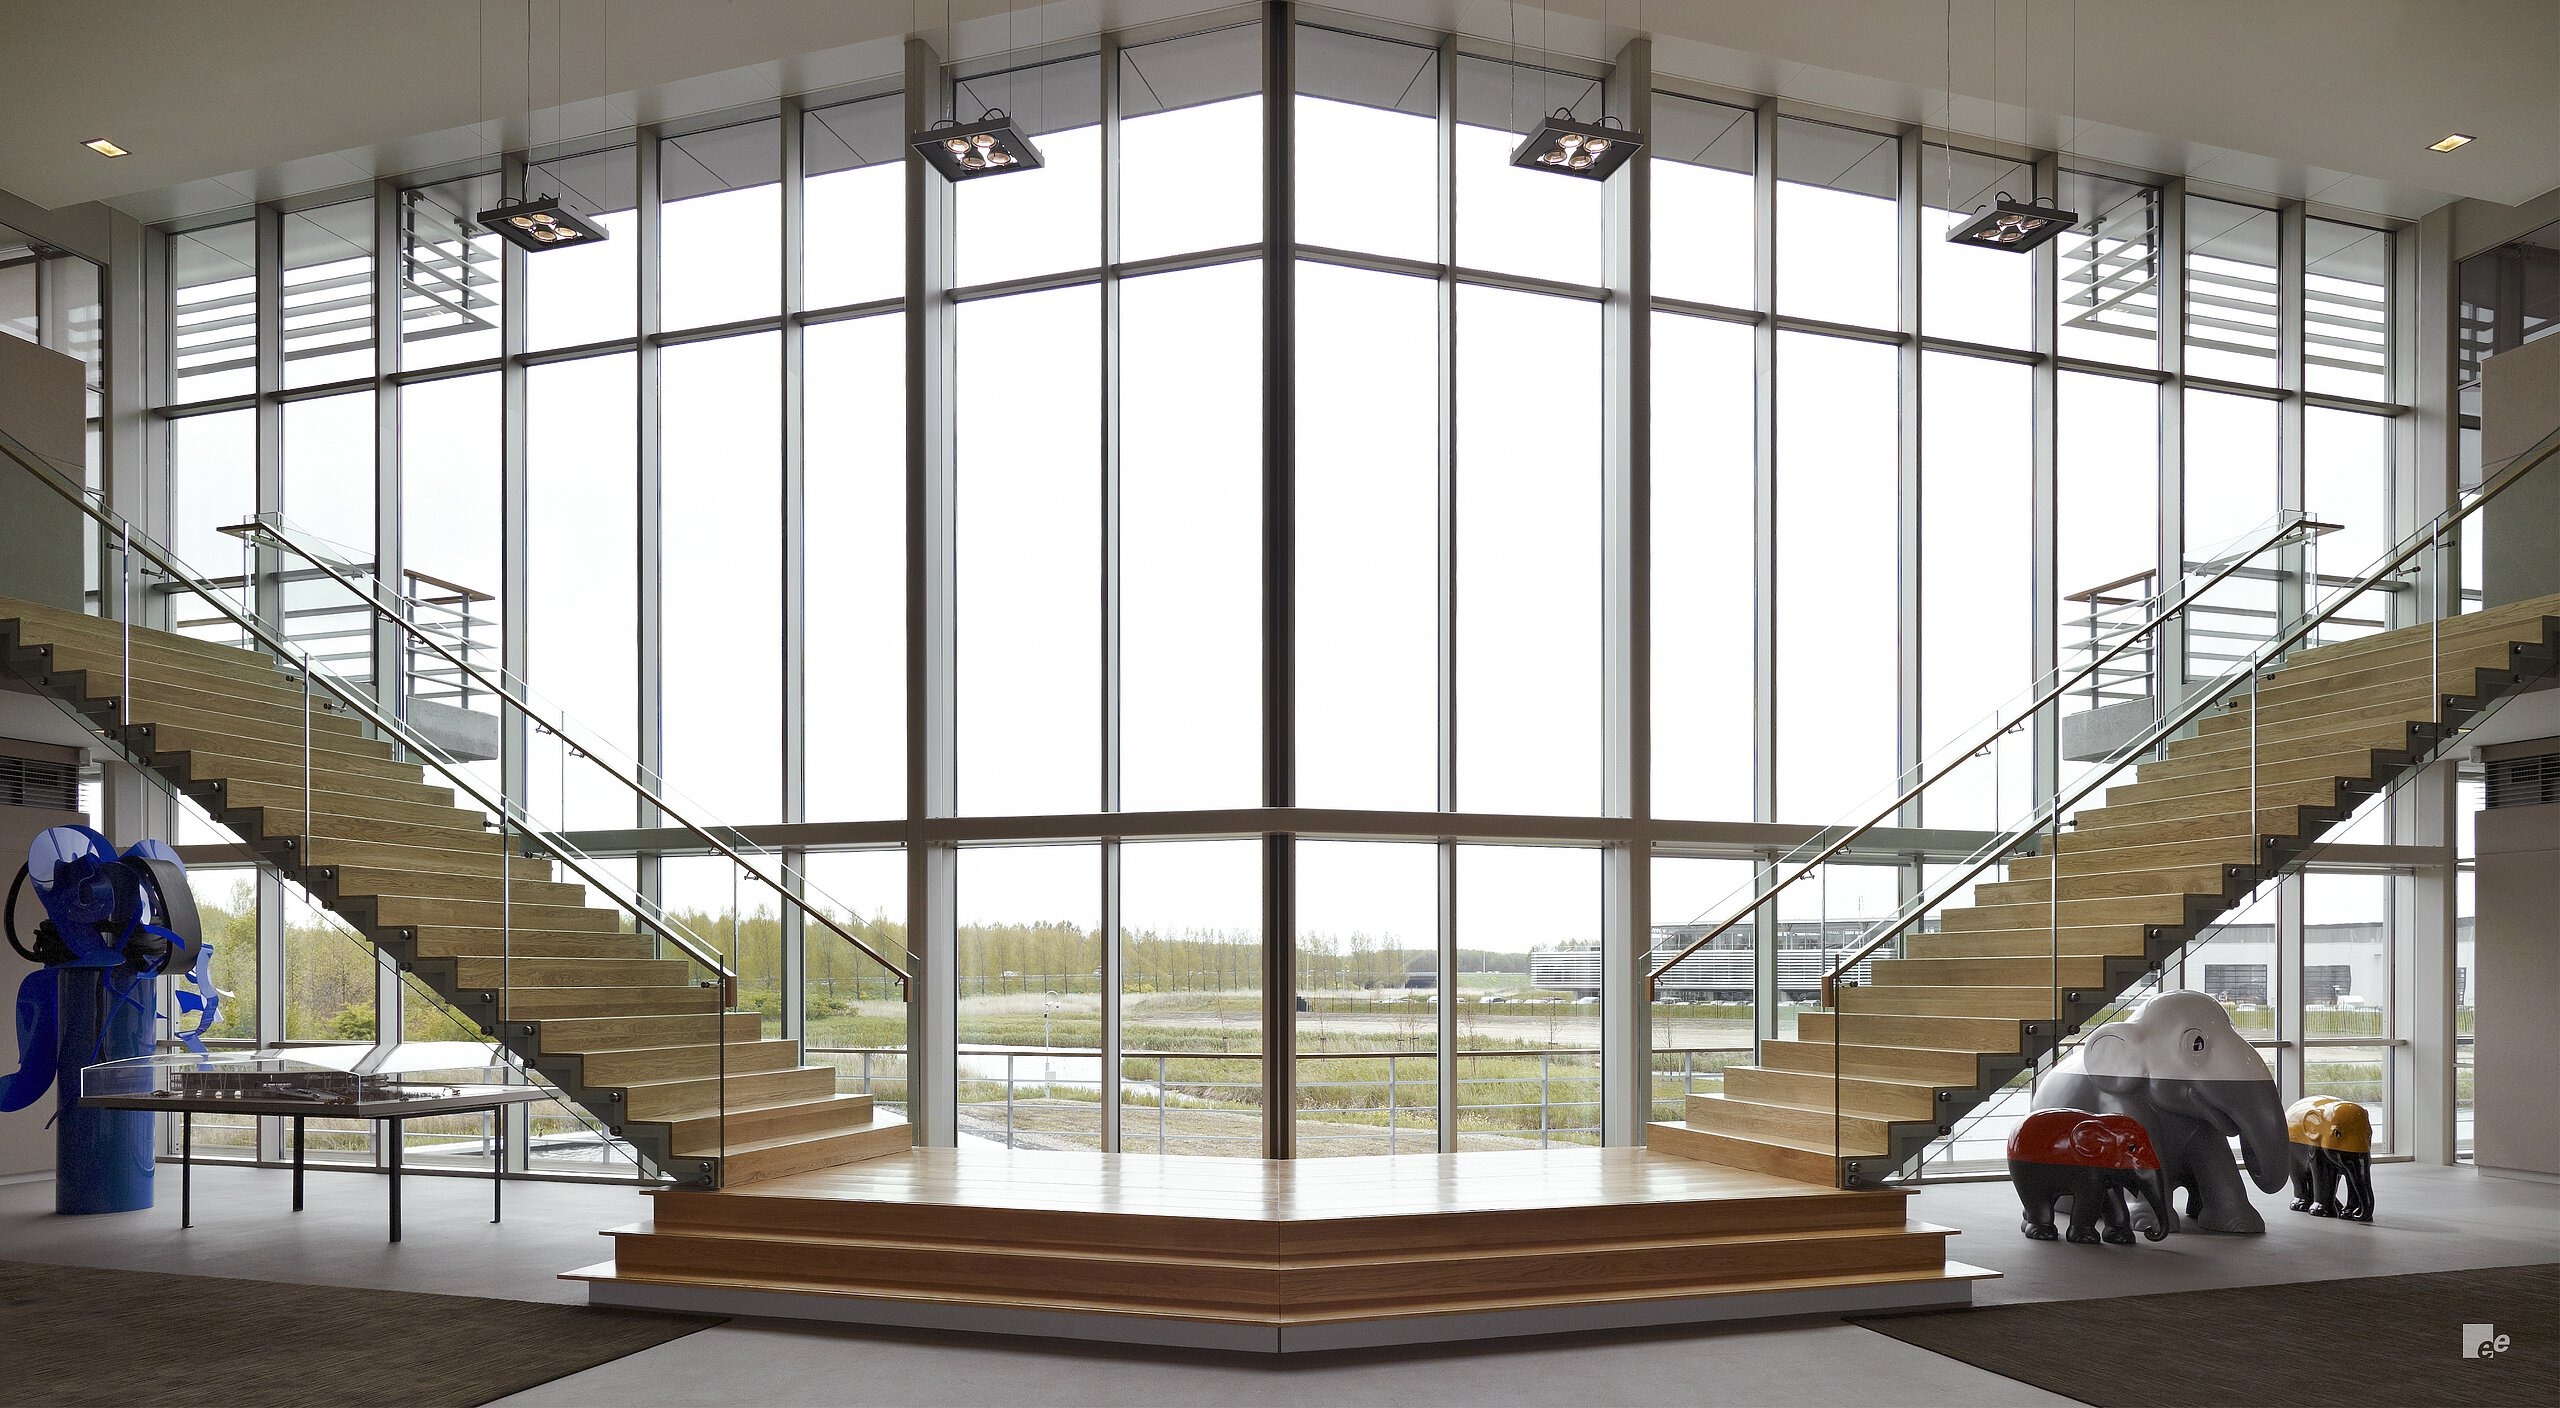 Dominationg design staircase for PON Holding